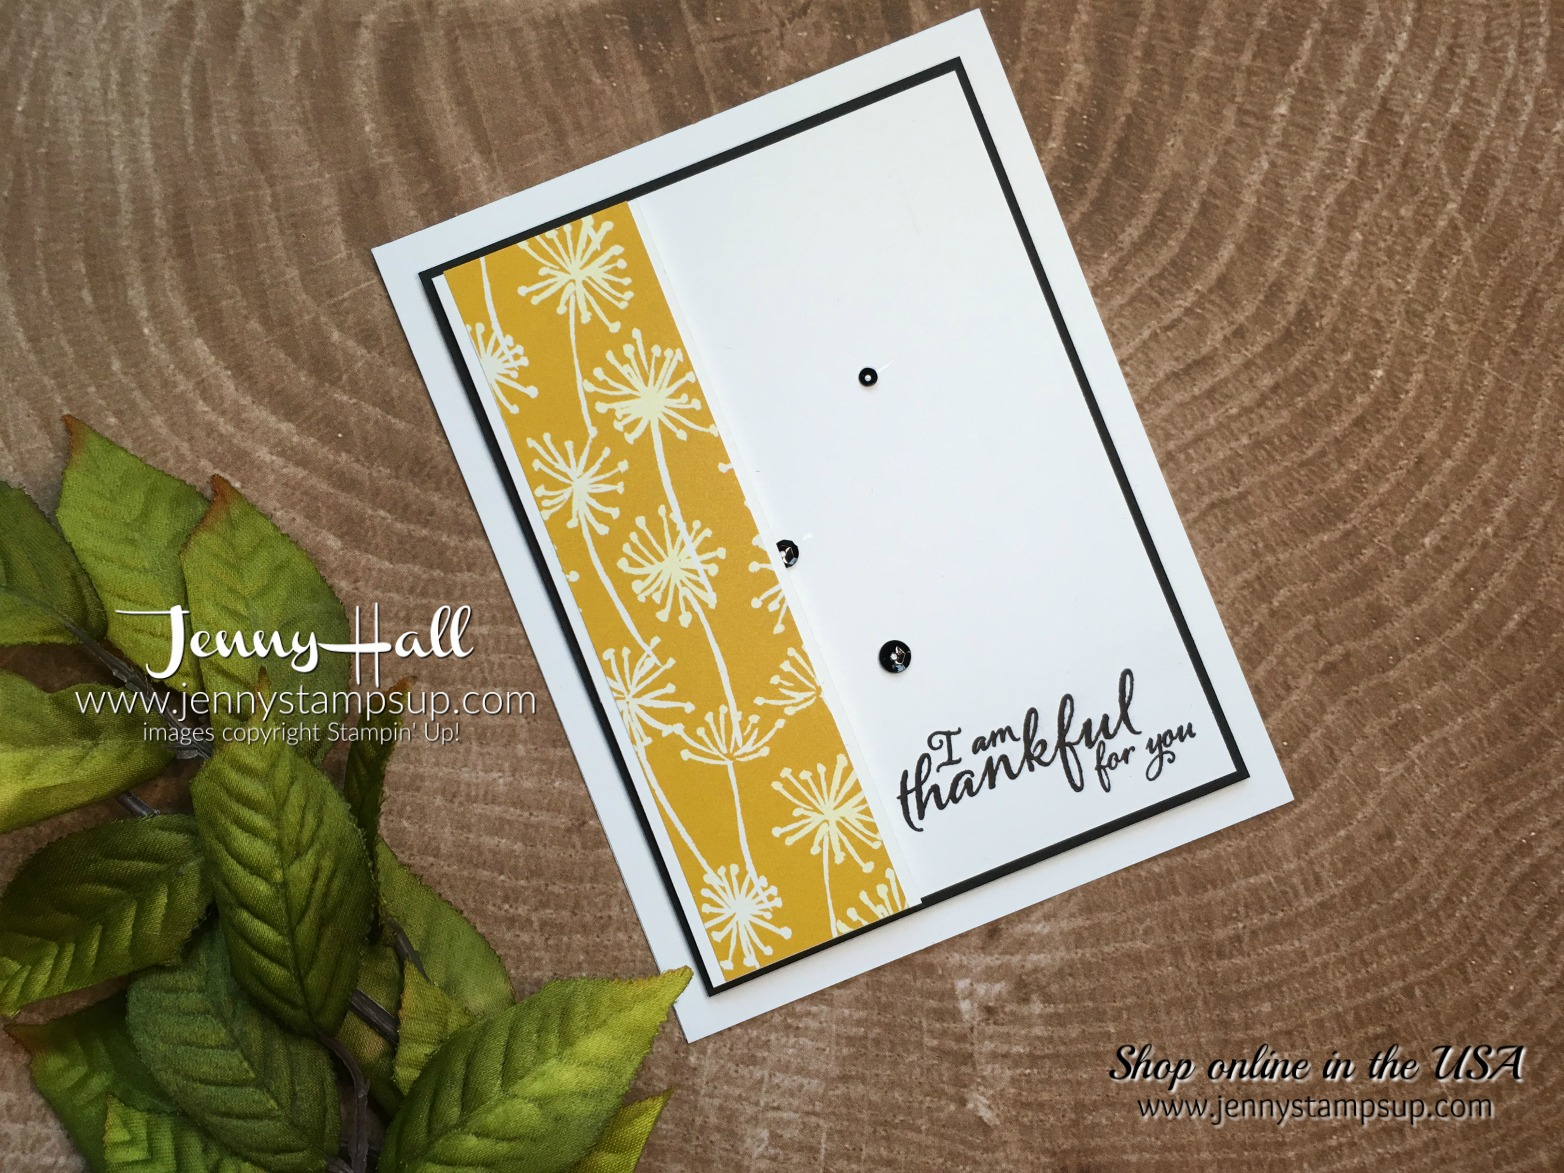 october stampin dreams blog hop card by Jenny Hall at www.jennyhalldesign.com for cardmaking, video tutorials, scrapbooking, arts and craft supplies and more!